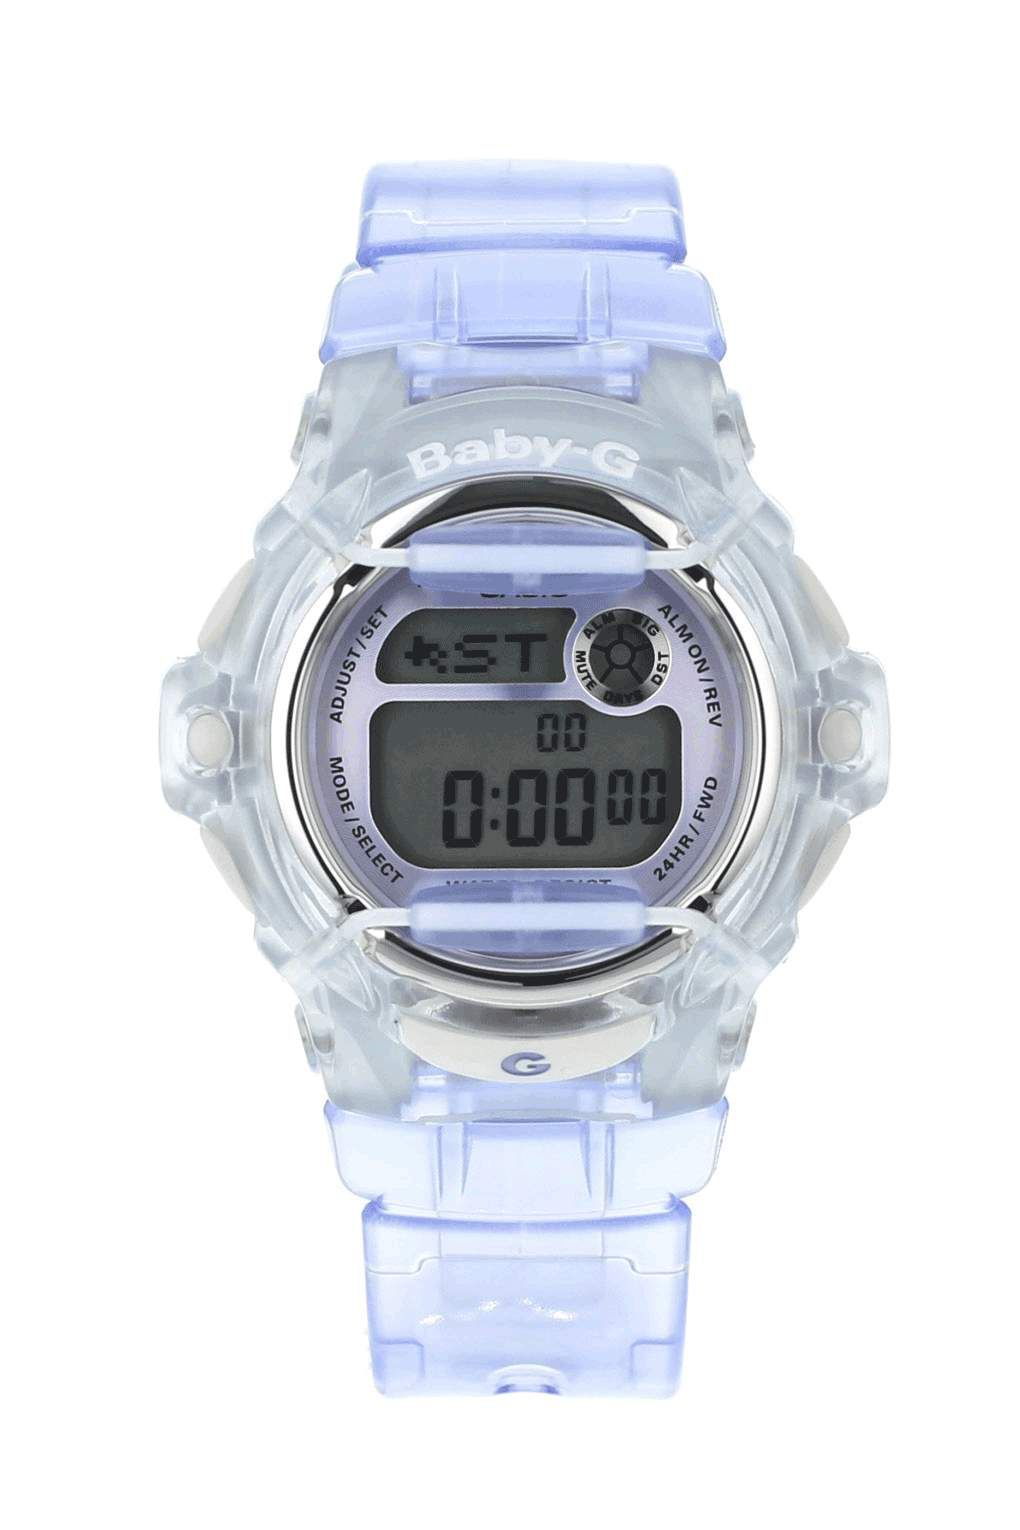 c5cd0d965901   Casio Baby G Jelly Baby Blue BG-169R-6ER Watch - Topshop